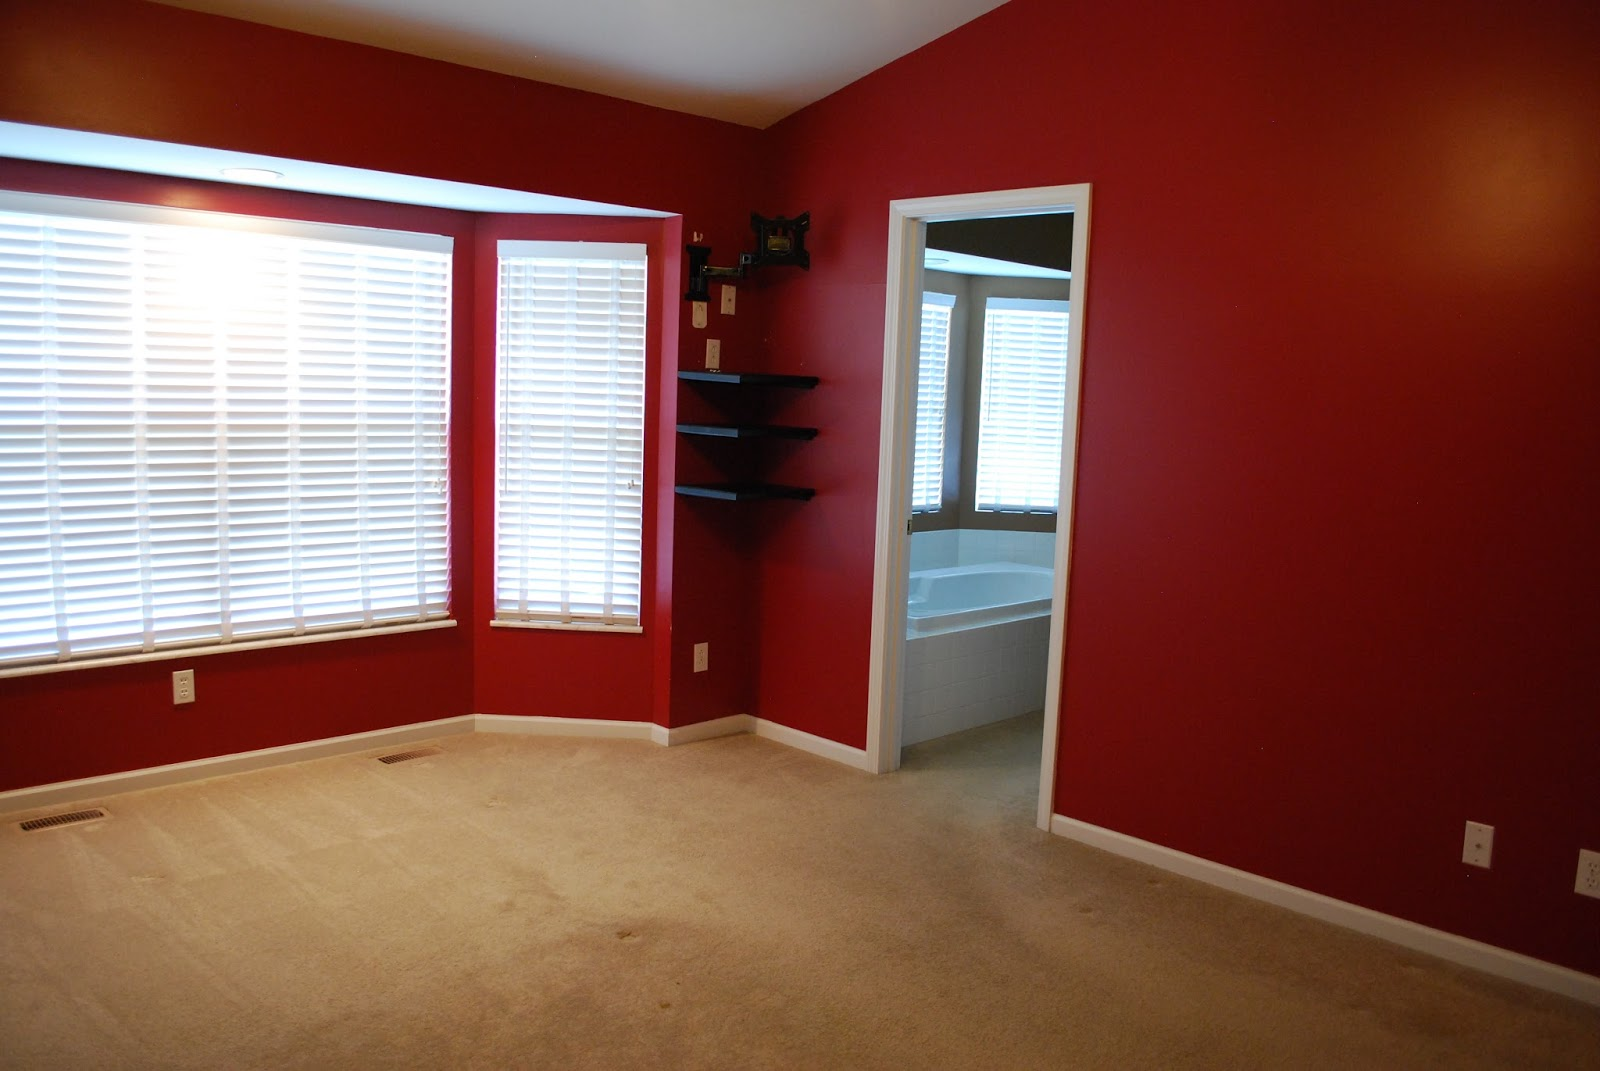 nuestra vida dulce master bedroom updates for those of you that may have forgotten never seen this is what our master bedroom looked like when we first bought our home